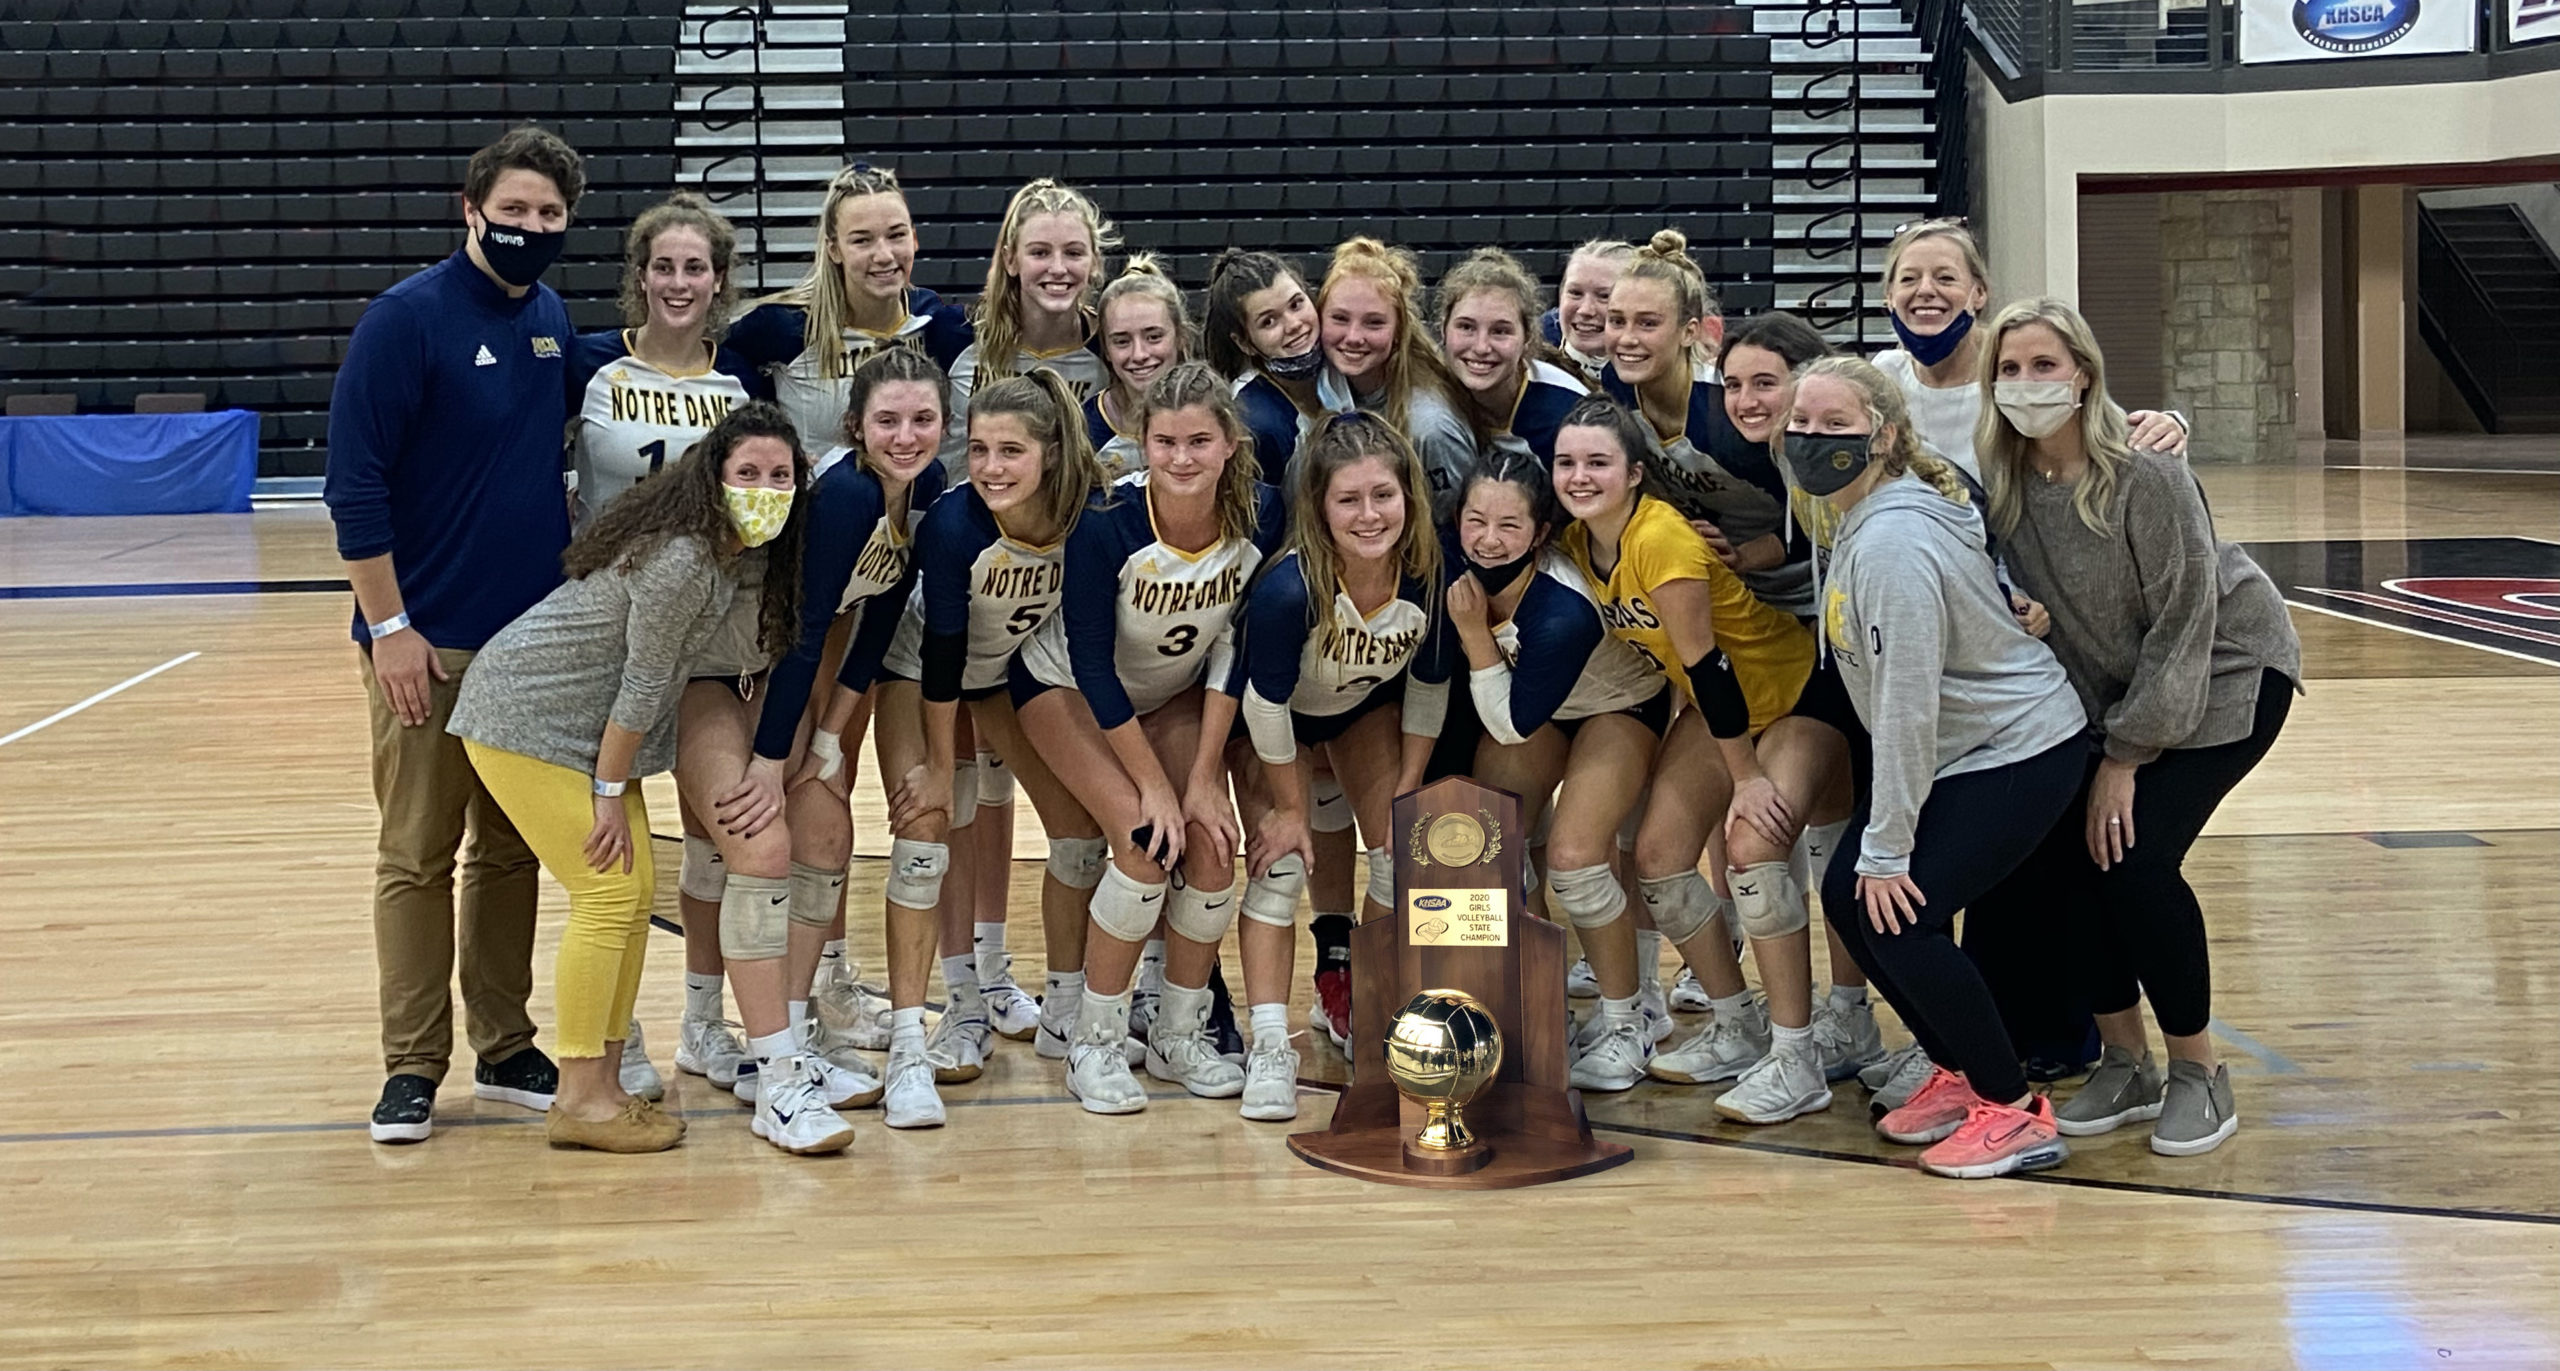 Volleyball 2020 State